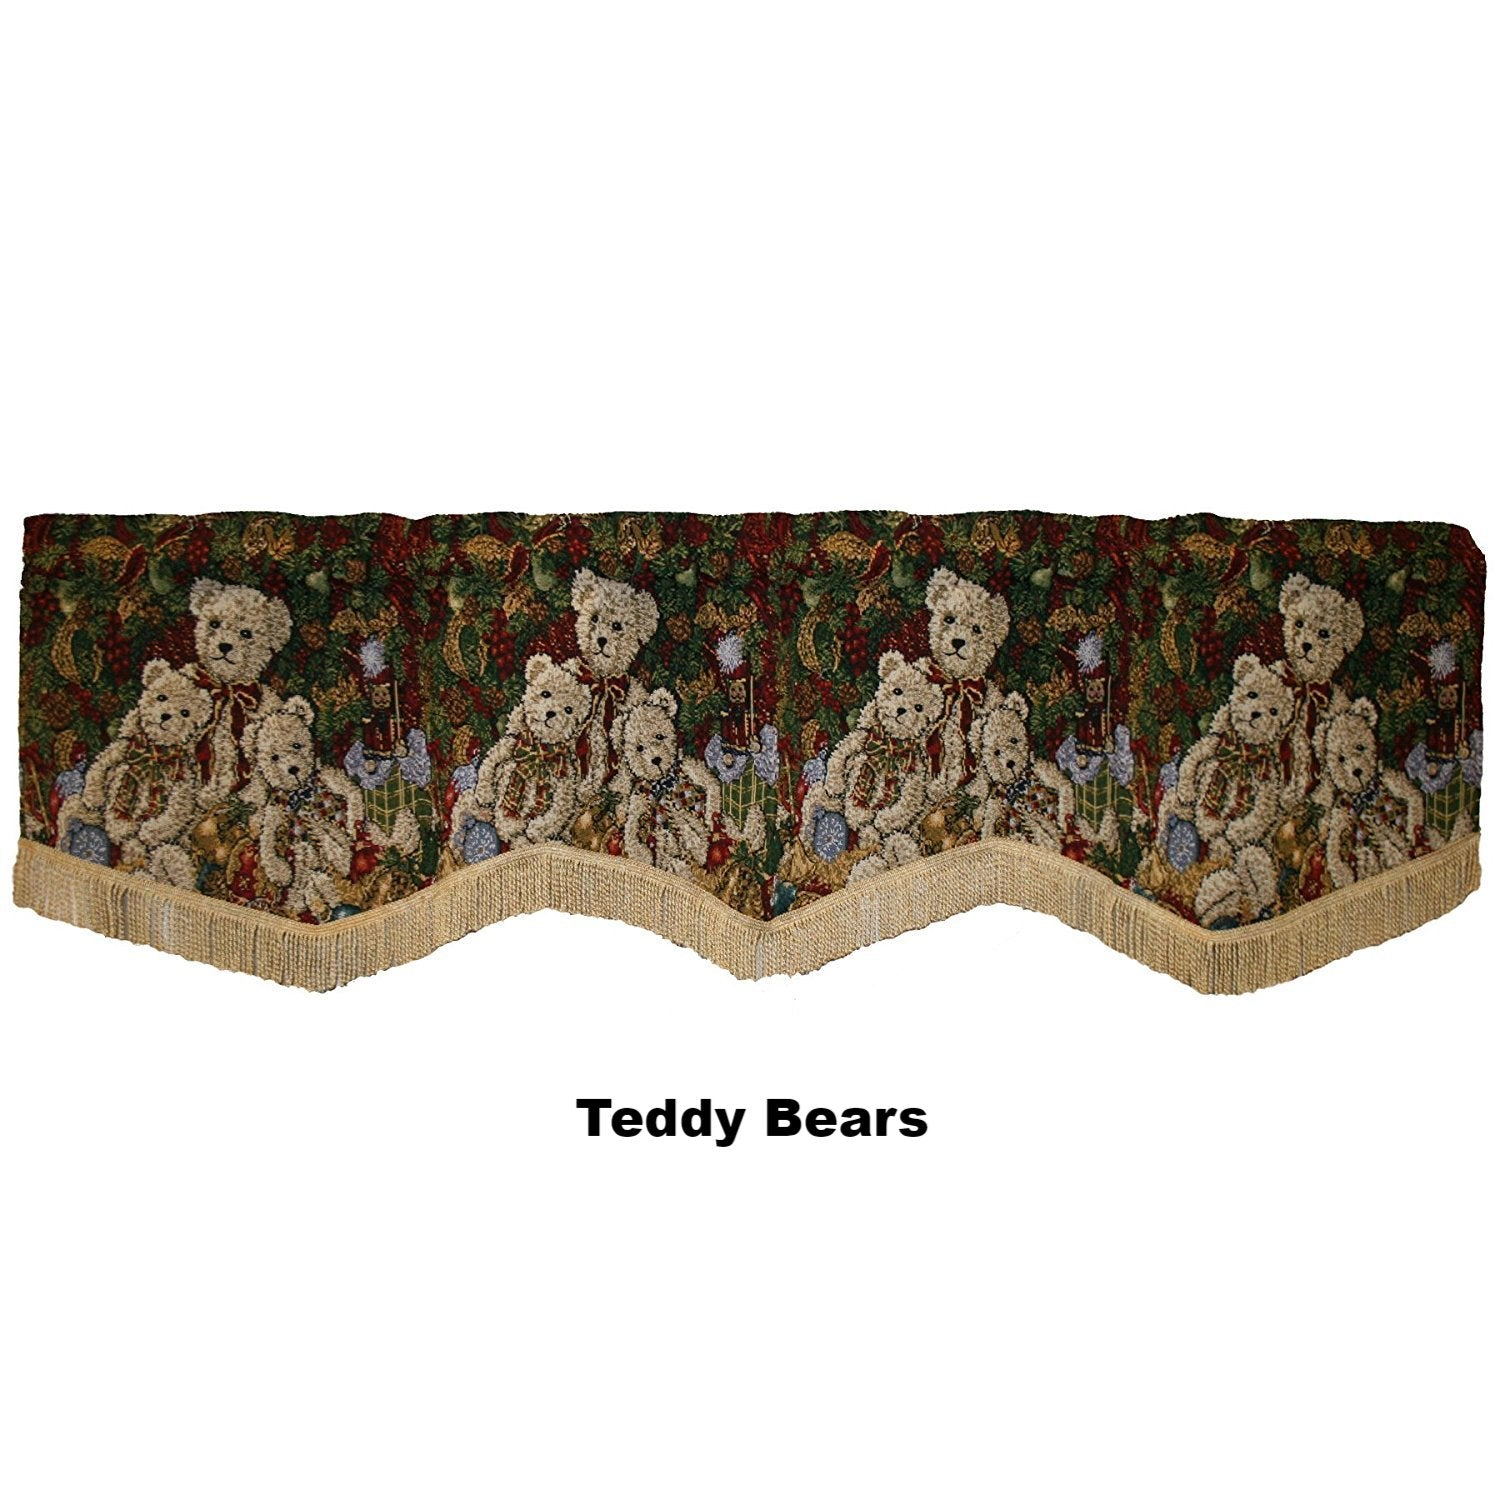 Violet Linen Decorative Christmas Tapestry Window Valance Teddy Bears